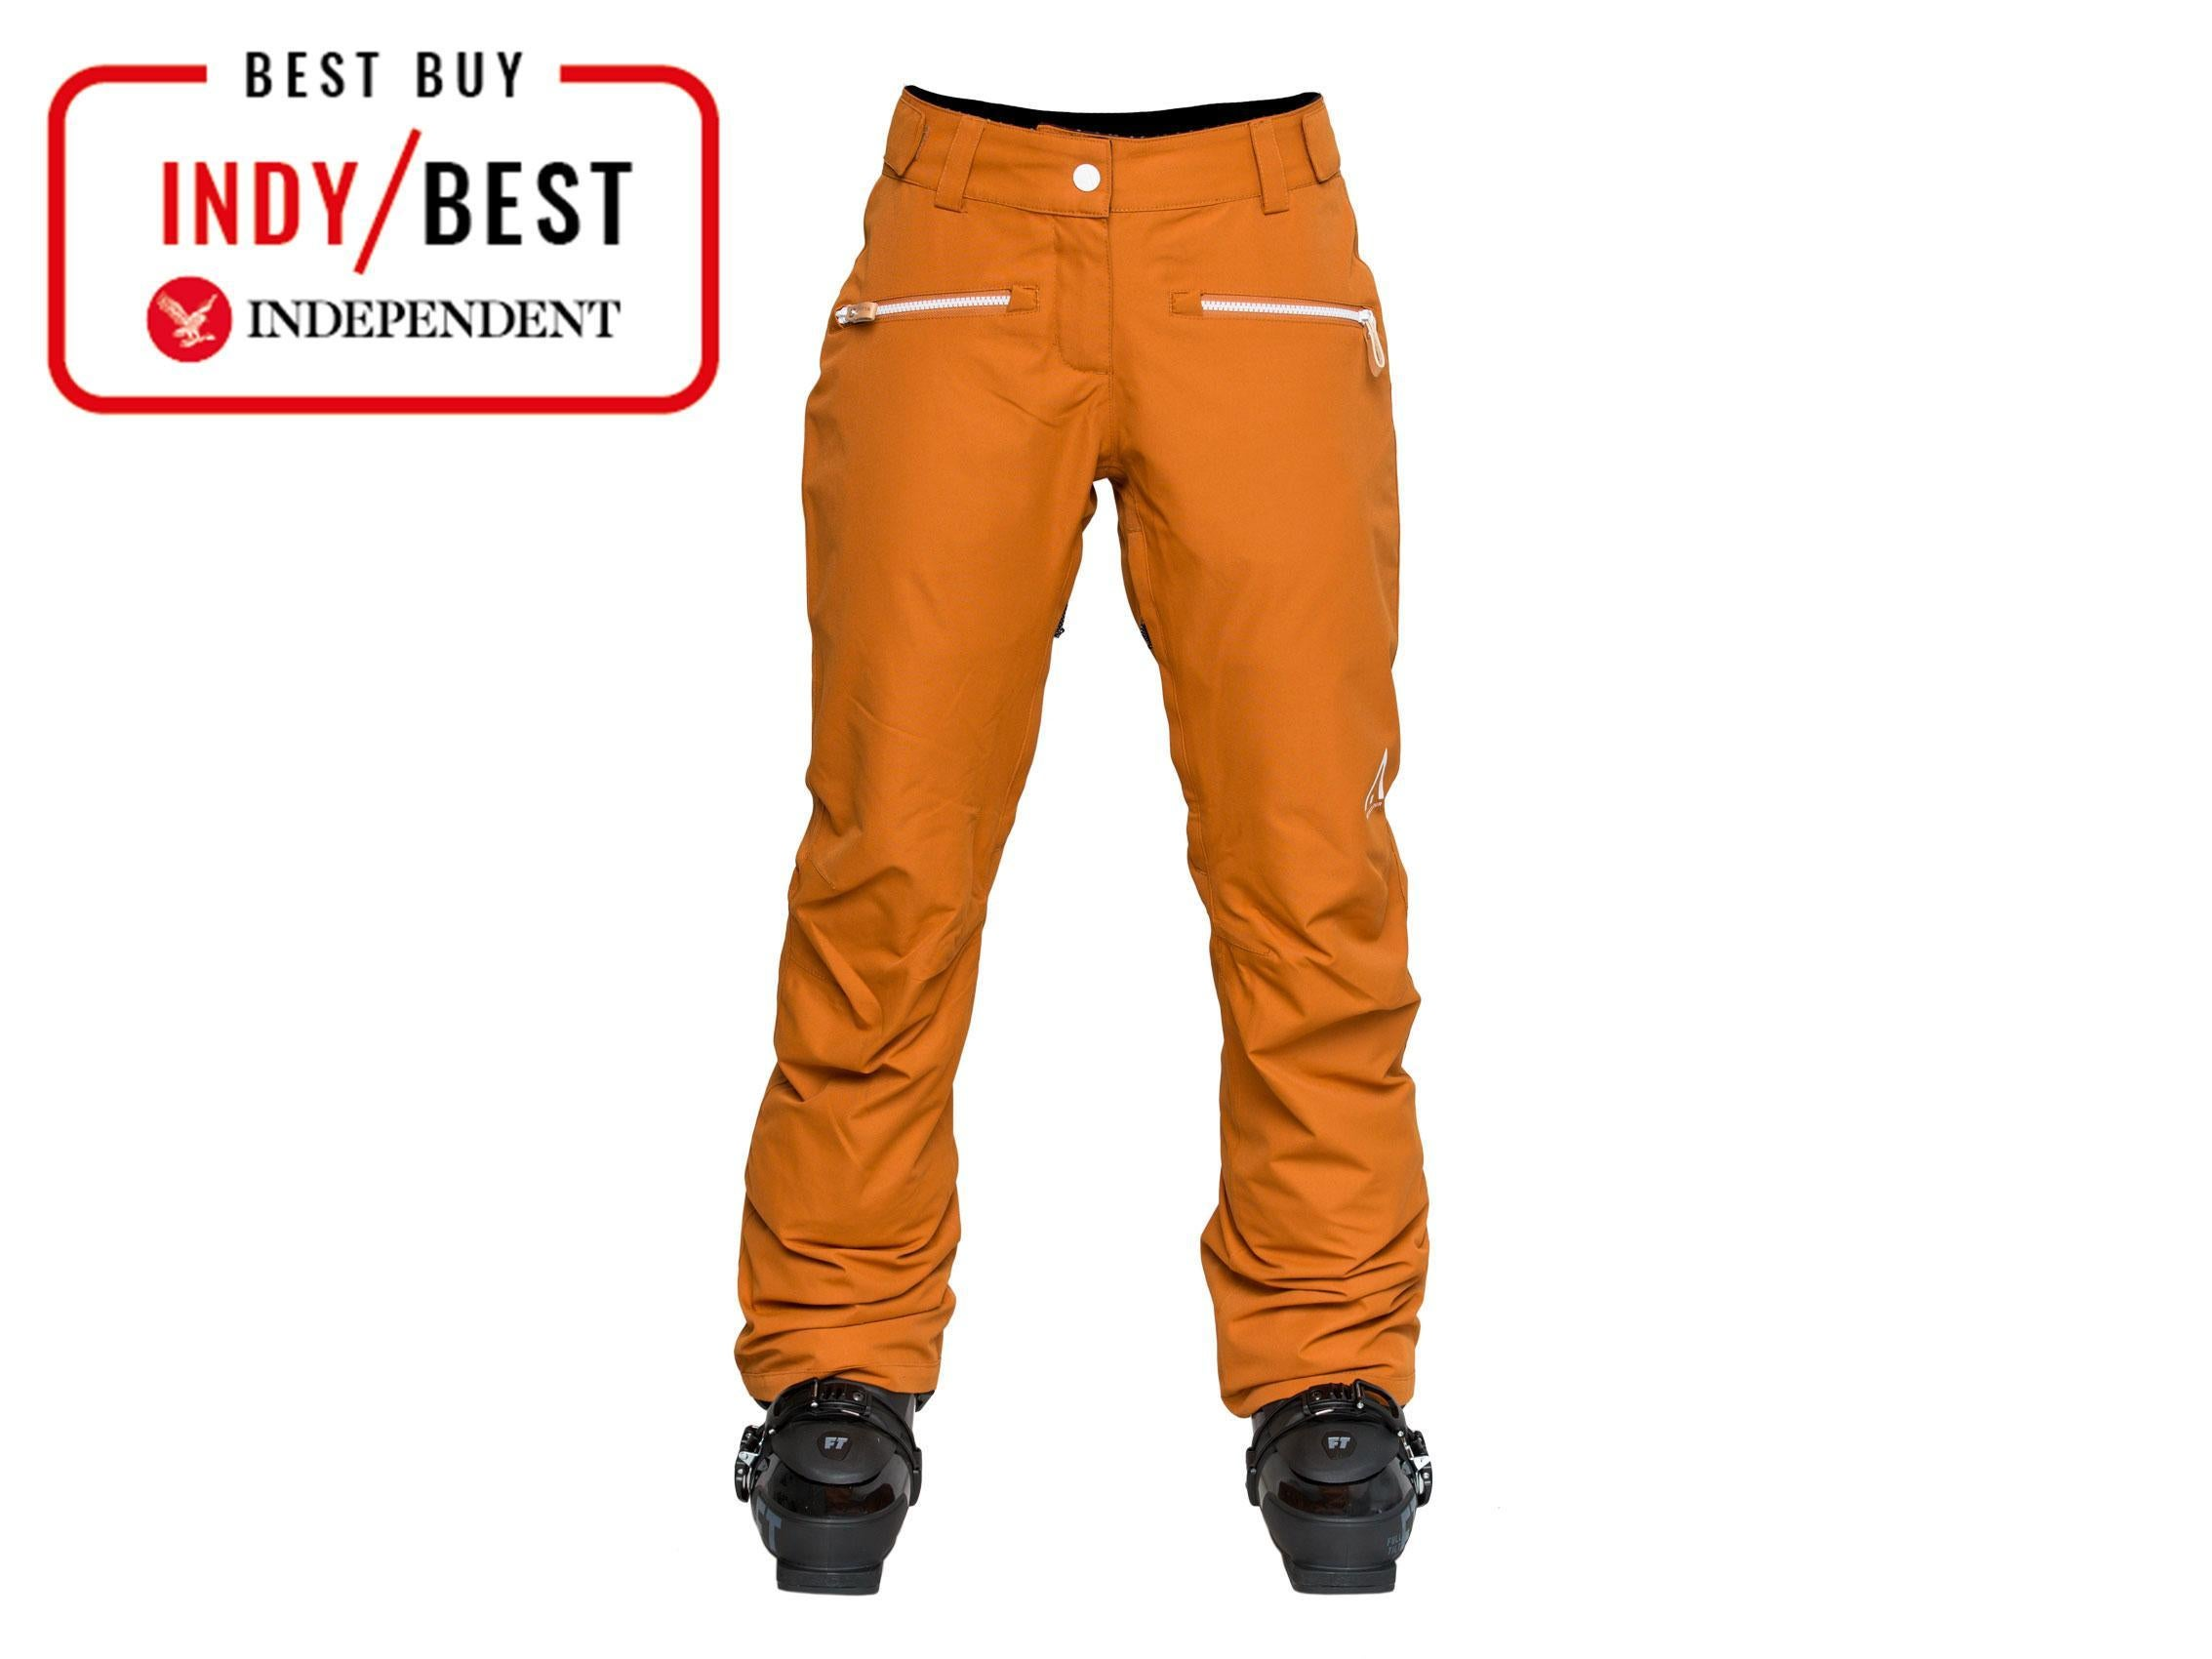 7c6fea78b 10 best women's ski pants 2018/2019 | The Independent